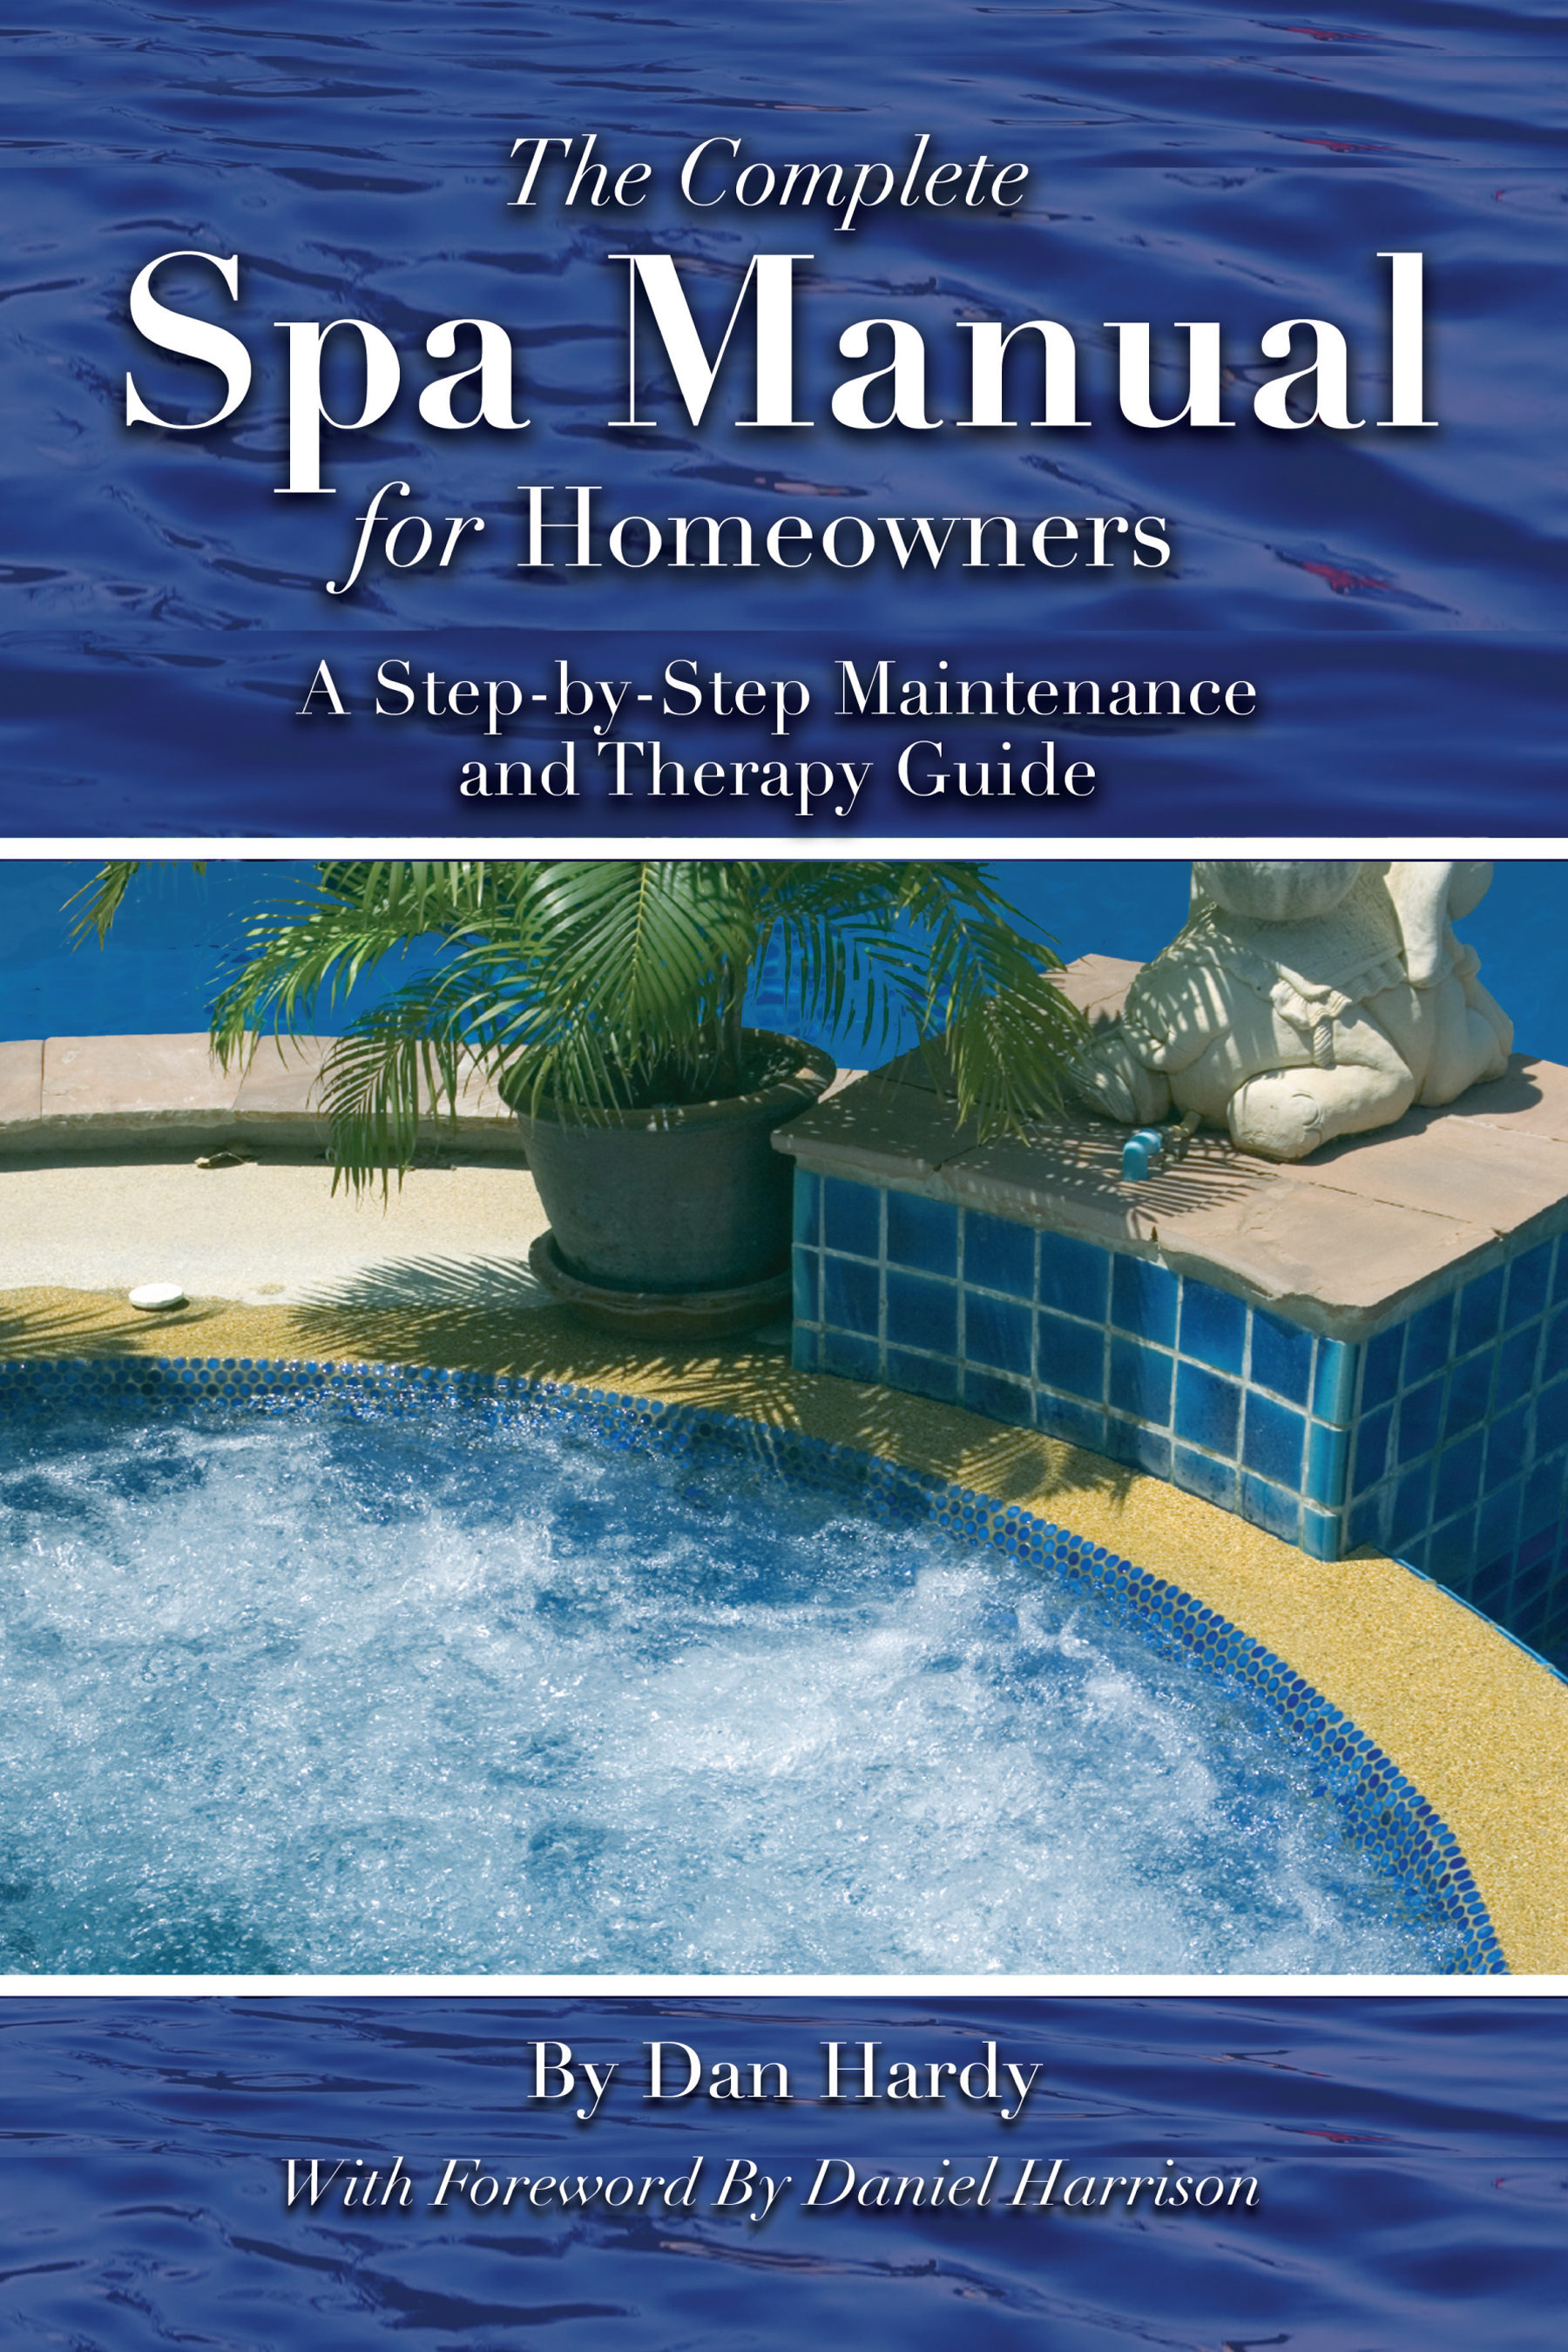 The Complete Spa Manual for Homeowners  A Step-by-Step Maintenance and Therapy Guide